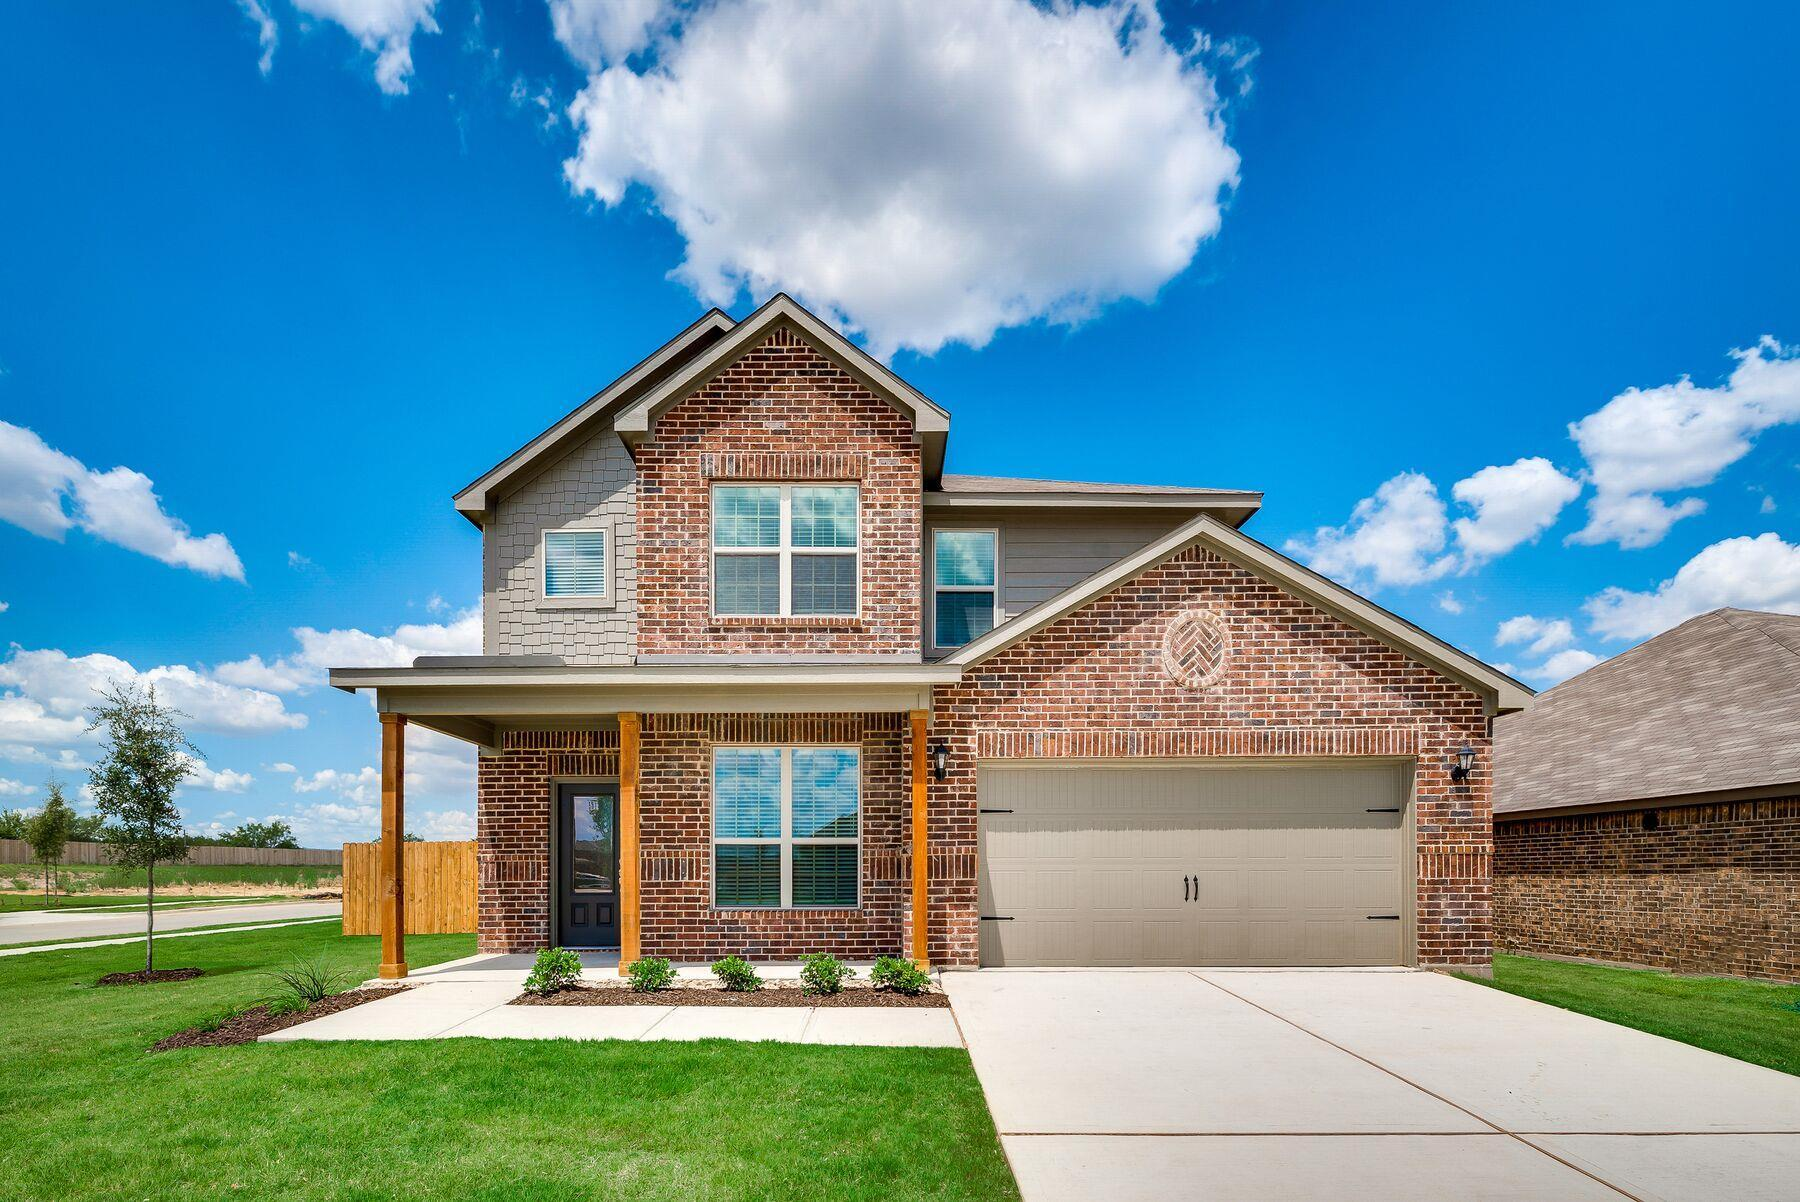 The Superior Plan by LGI Homes:The Superior Plan is a beautiful two-story home located in The Bridges!